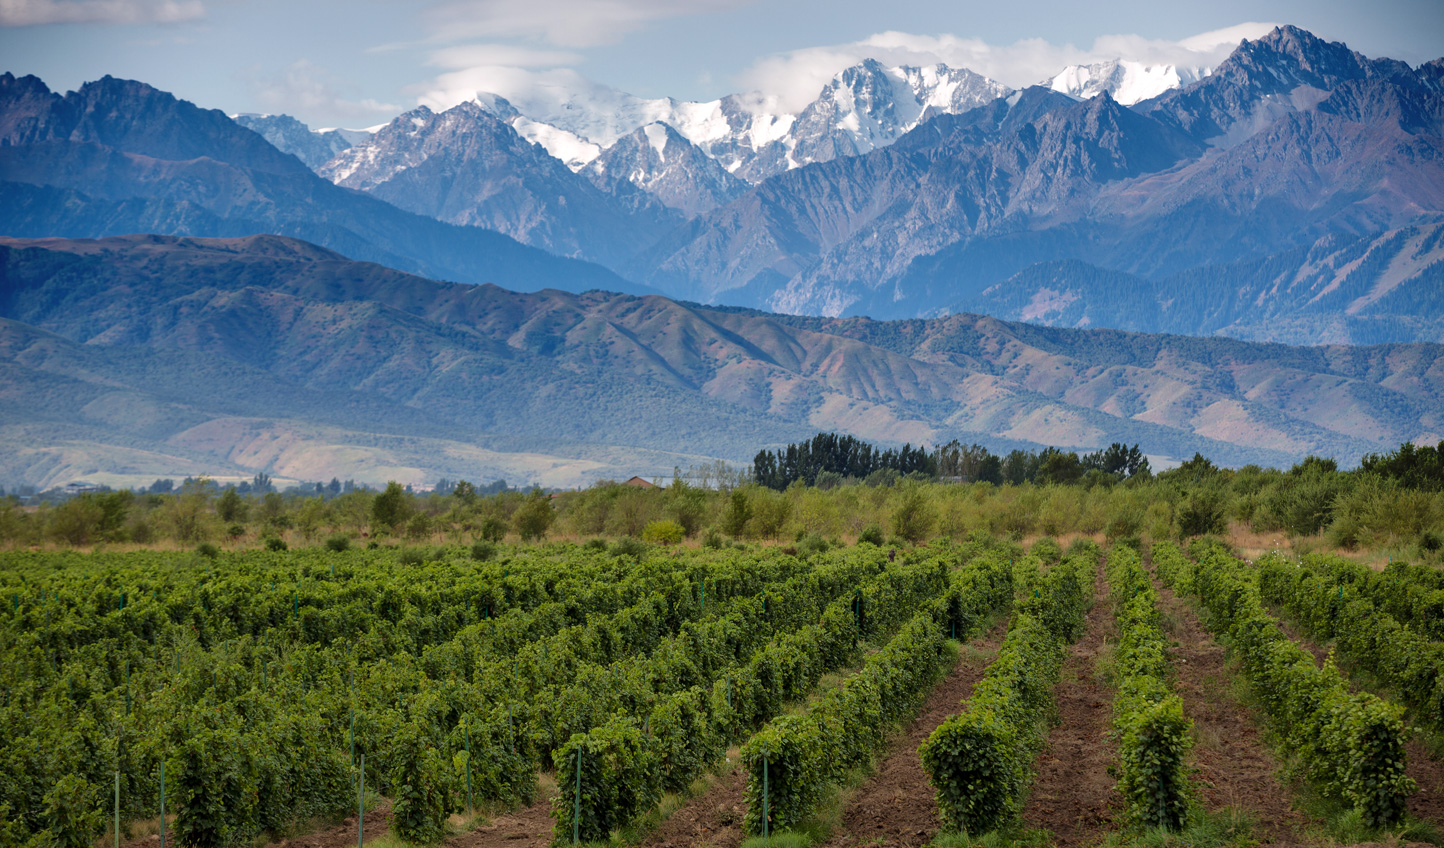 See the vineyards of Mendoza with the magnificent Andes backdrop